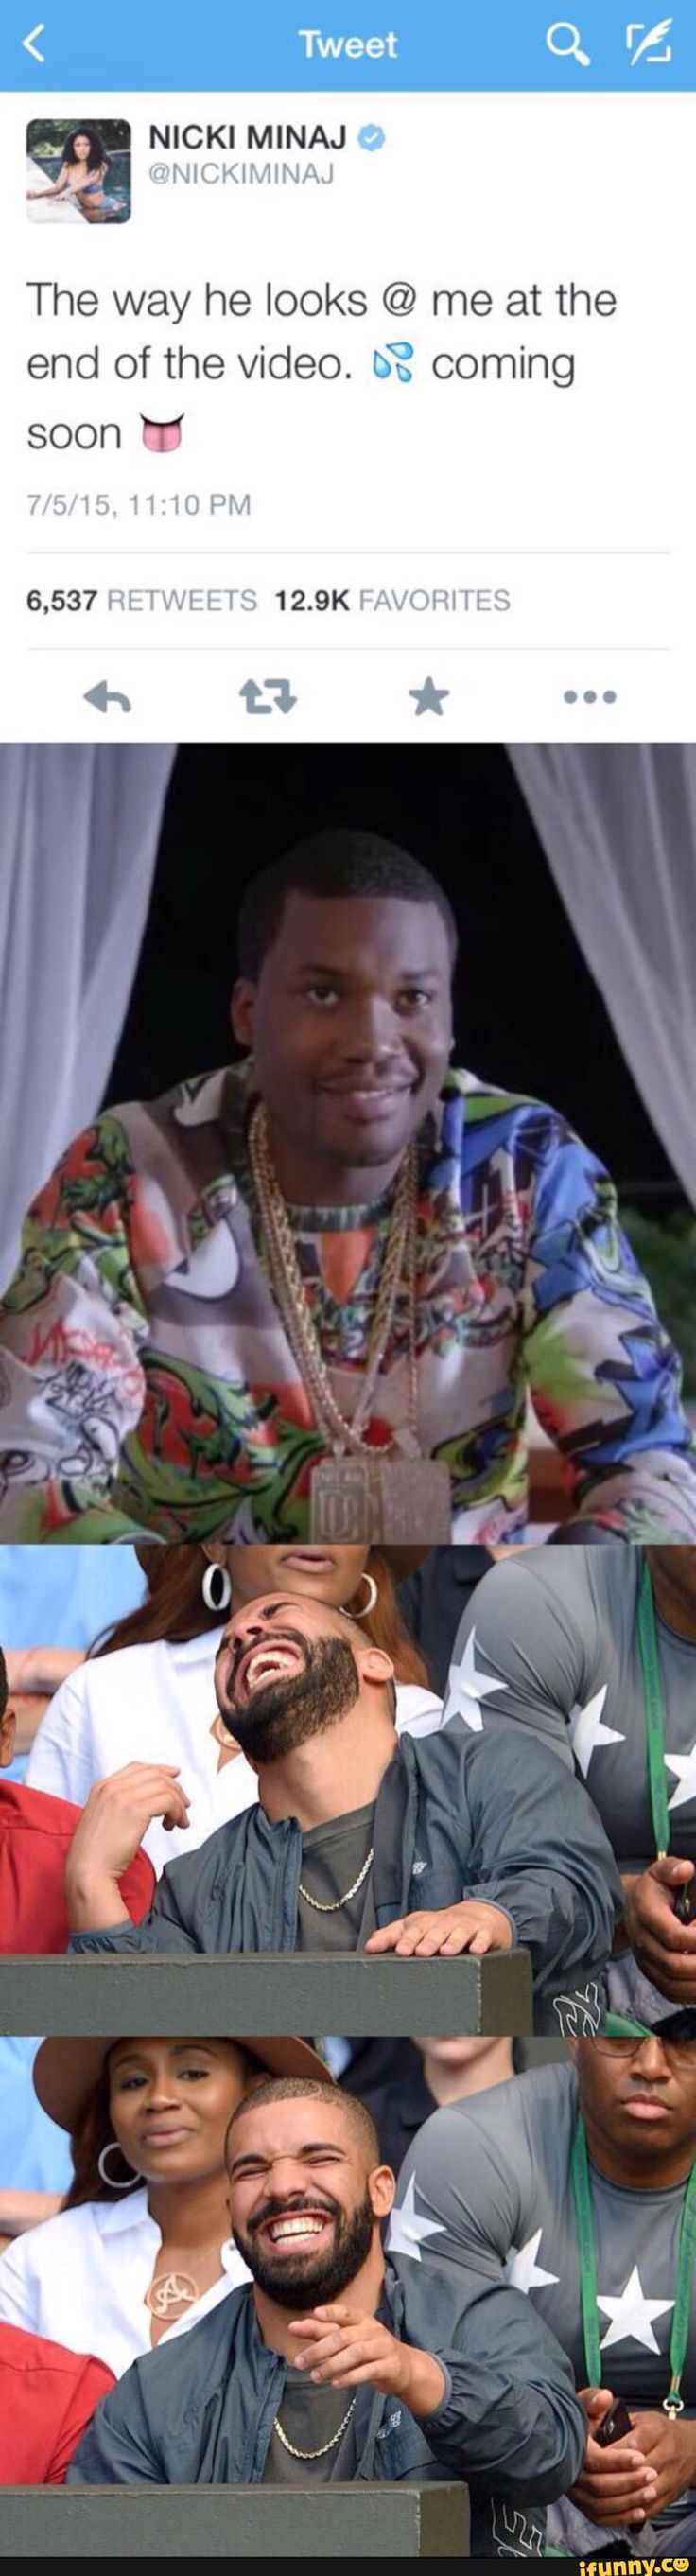 Meek mill is so fckin ugly I would choose my baby drake over that nigga any day! #TeamDrizzy